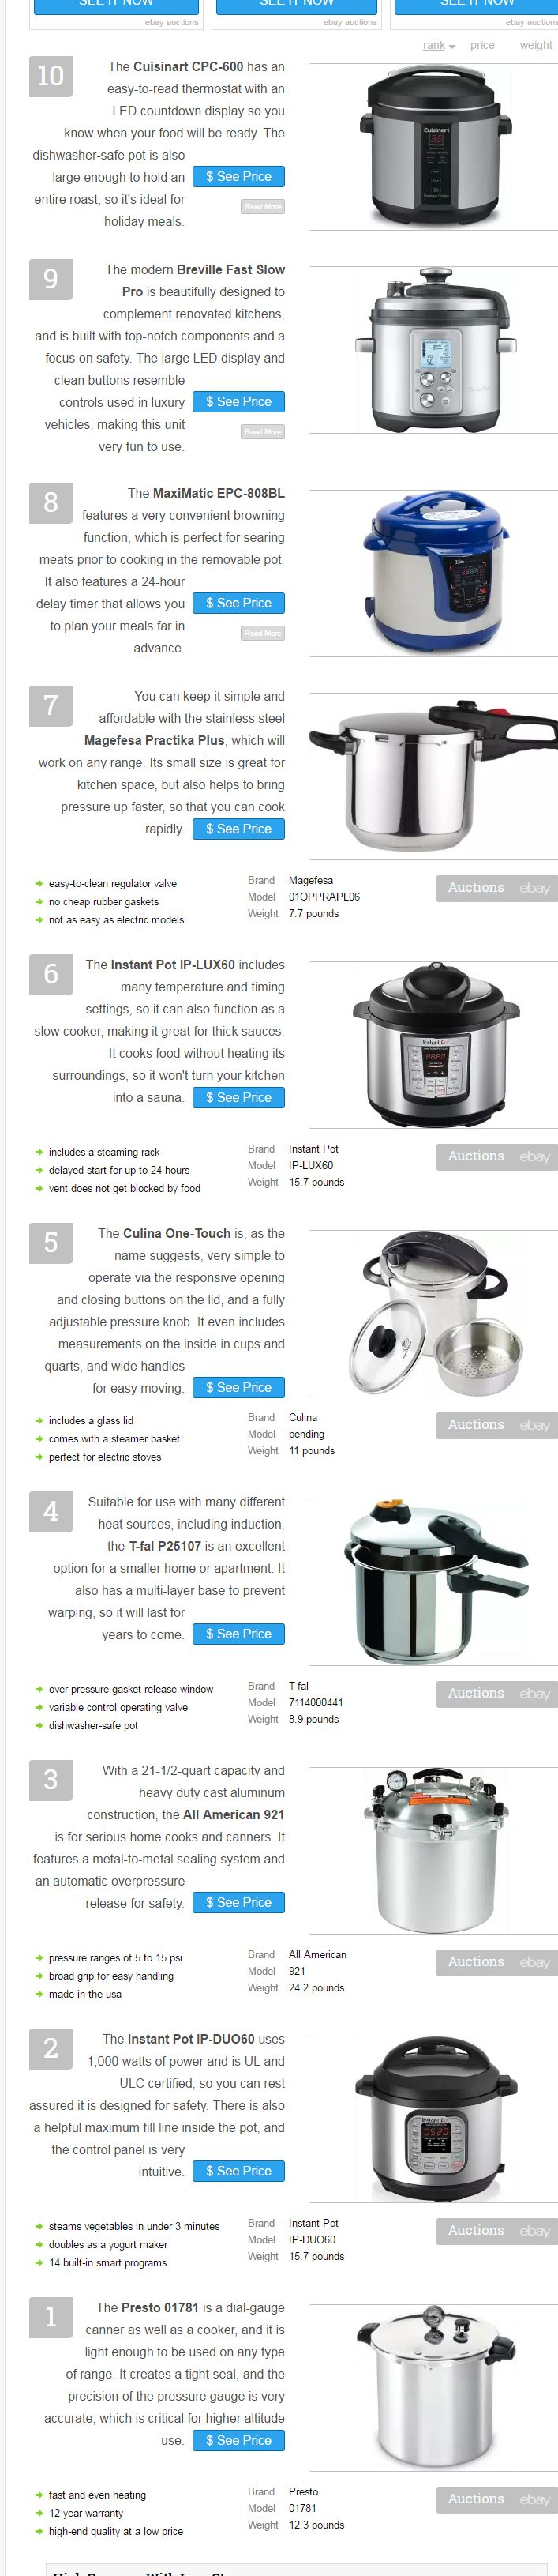 This article came from wiki.ezvid.com but I couldn't get it to copy so I took a screenshot and linked it. Pressure cookers not only cook foods faster than other methods, they save energy, too. Use one of these as your secret weapon for long-cooked beans, rice, braised meats, and many other kitchen staples. Our selection …